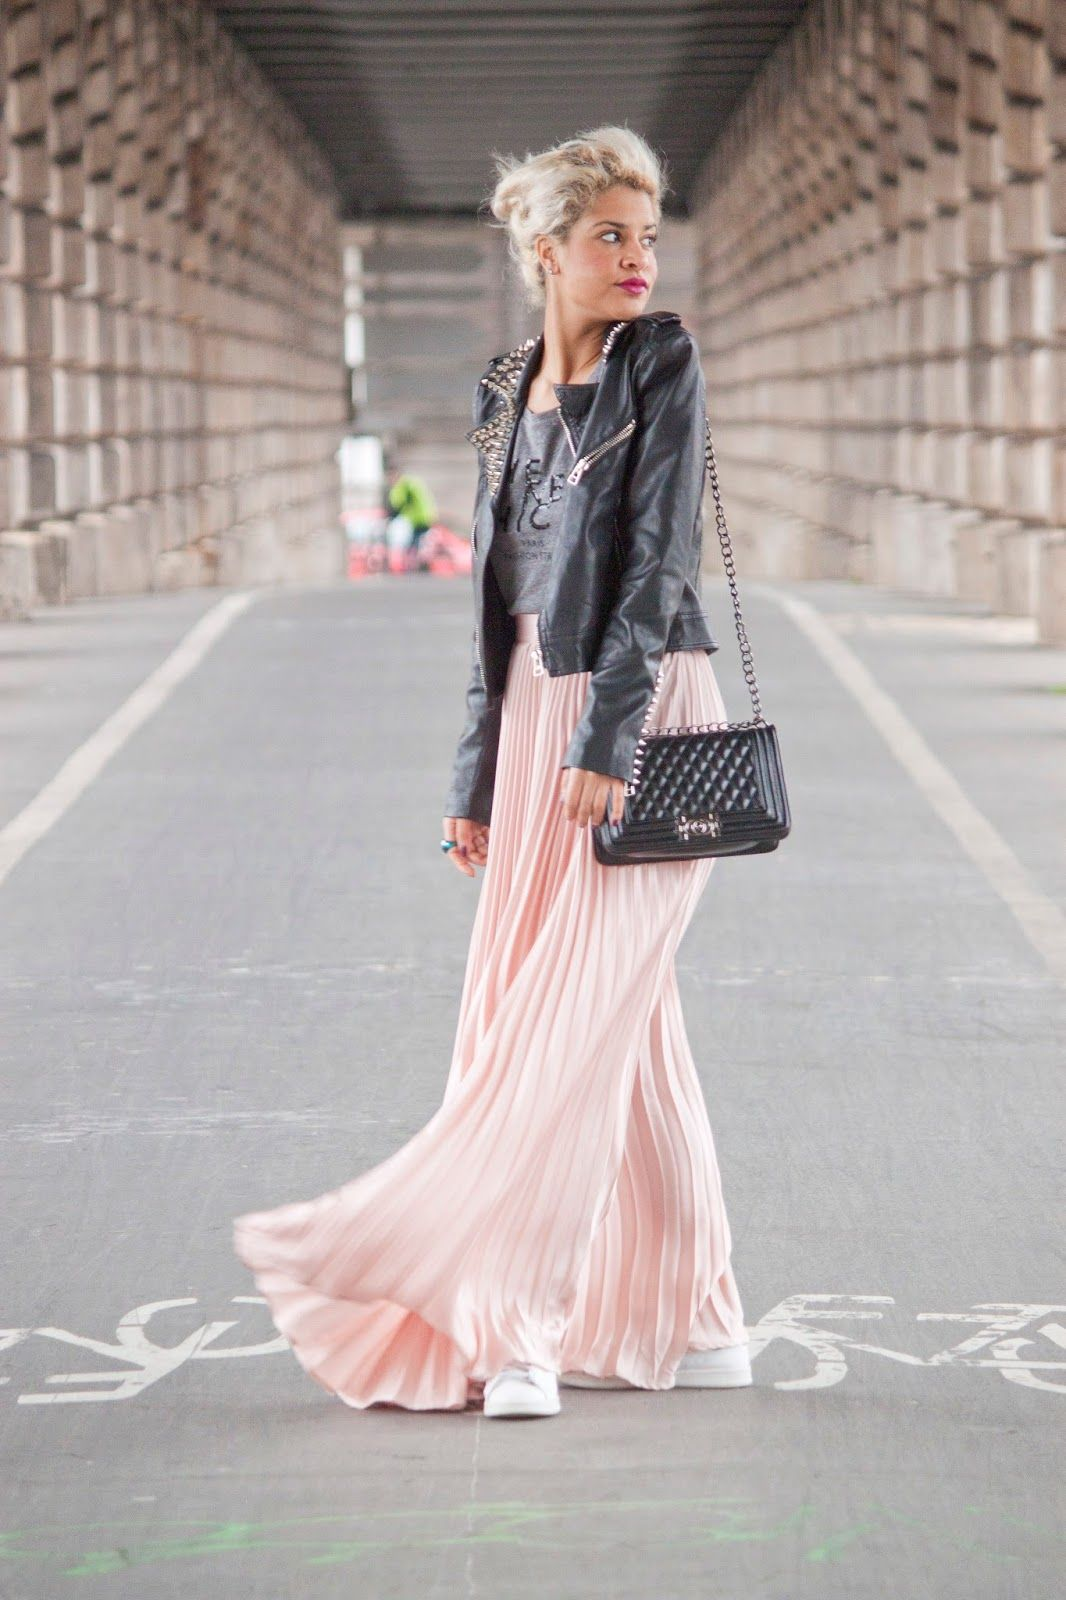 jupe longue pliss e rose clothing pinterest street styles street and worn wear